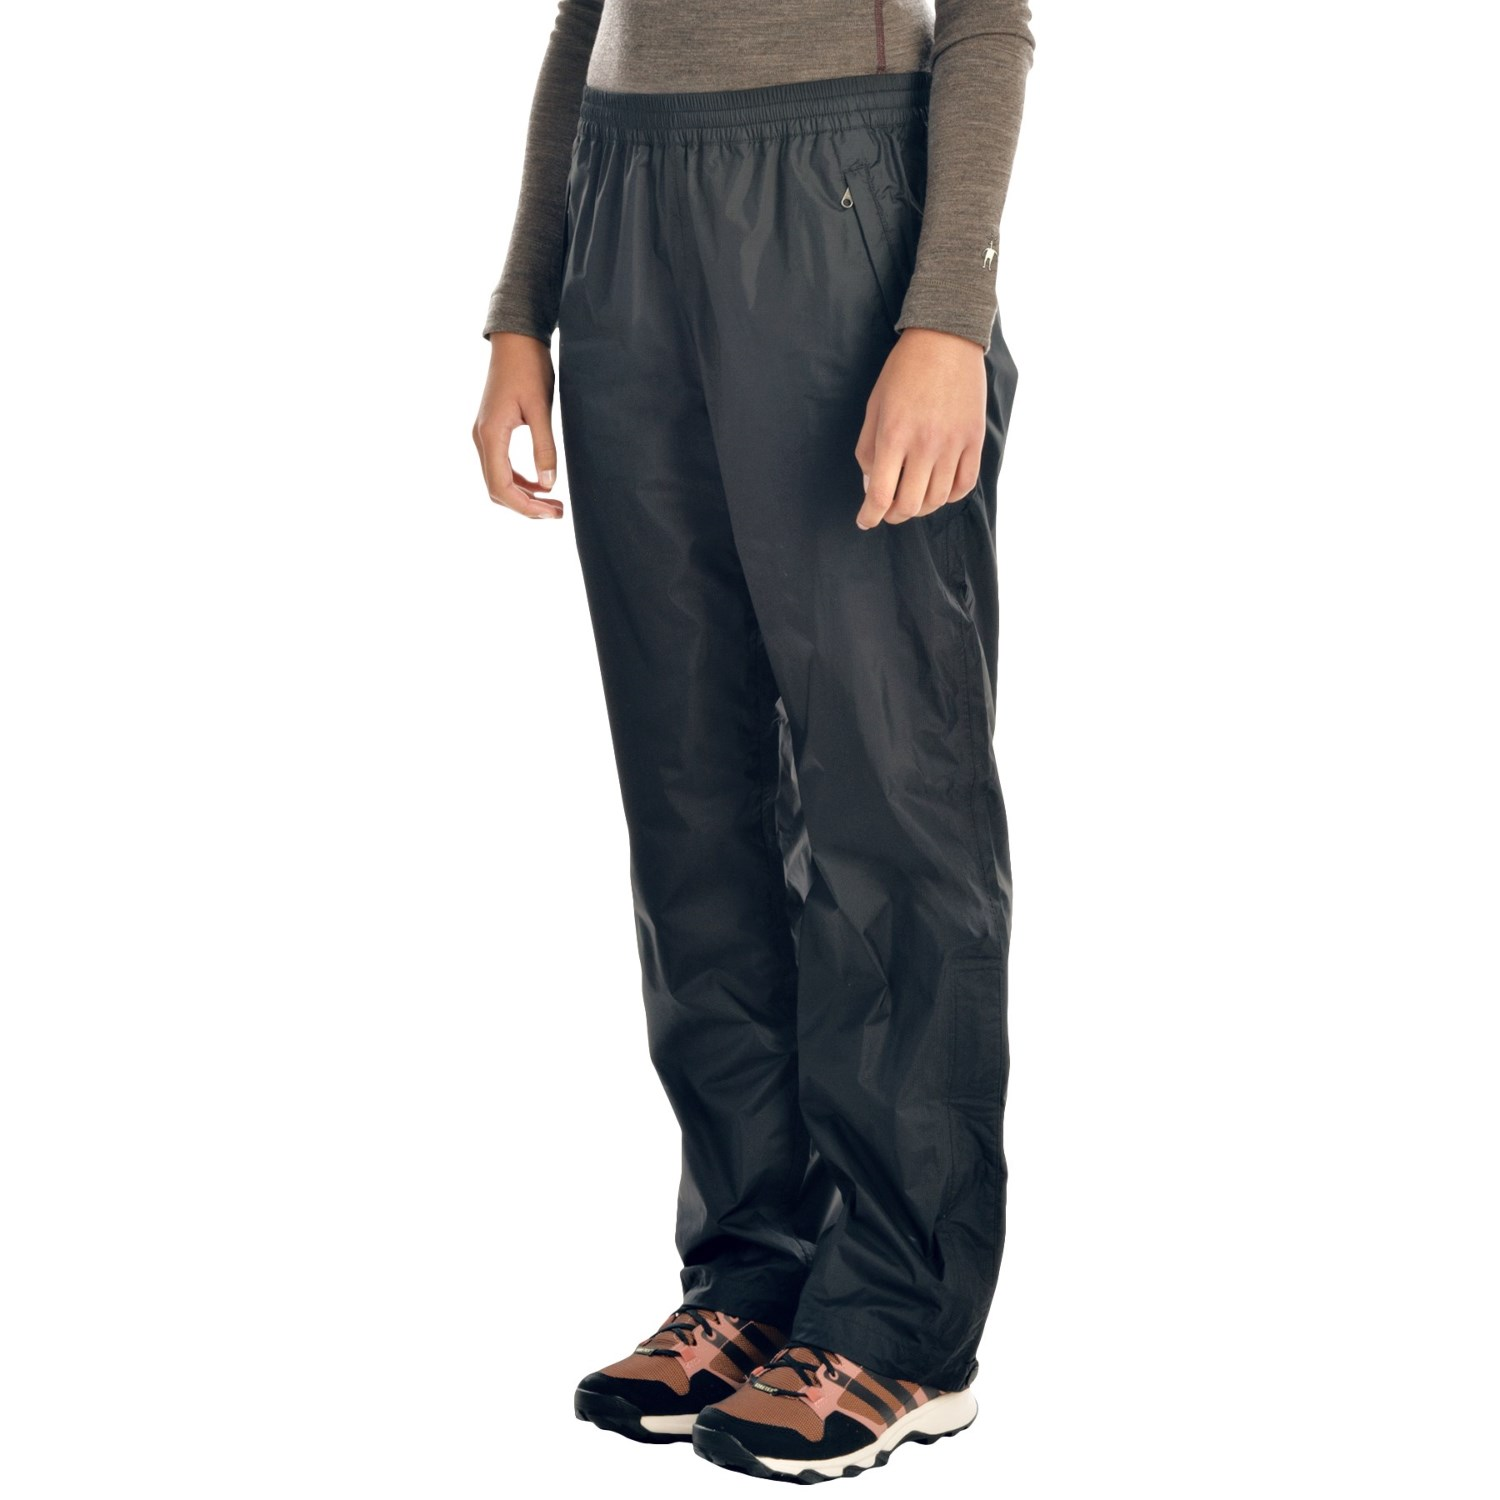 Excellent  Trail Roamr Pants  UPF 50 For Women  Camping Amp Hiking Price